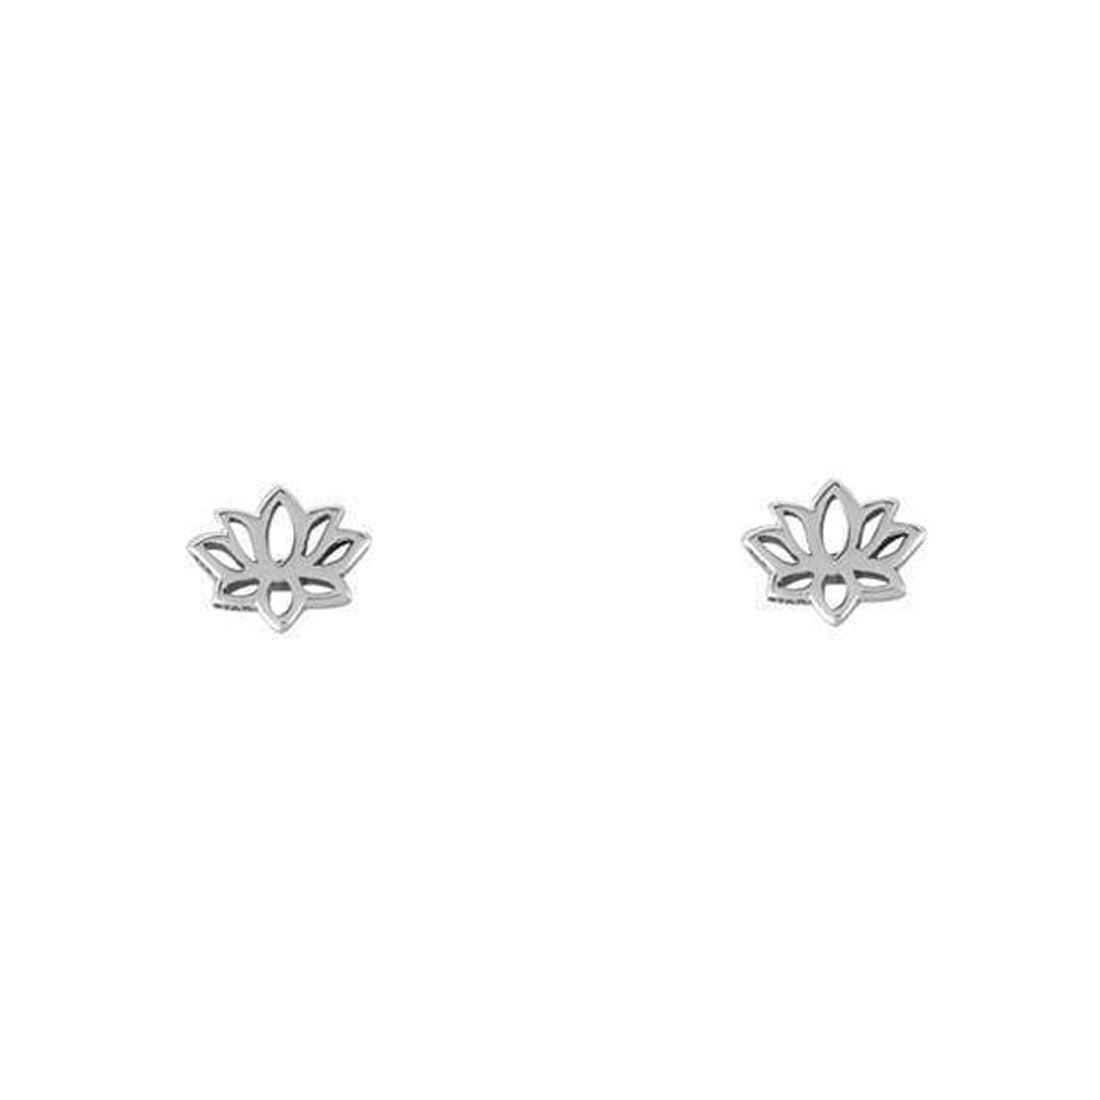 Midsummer Star Earrings Dainty Lotus Studs